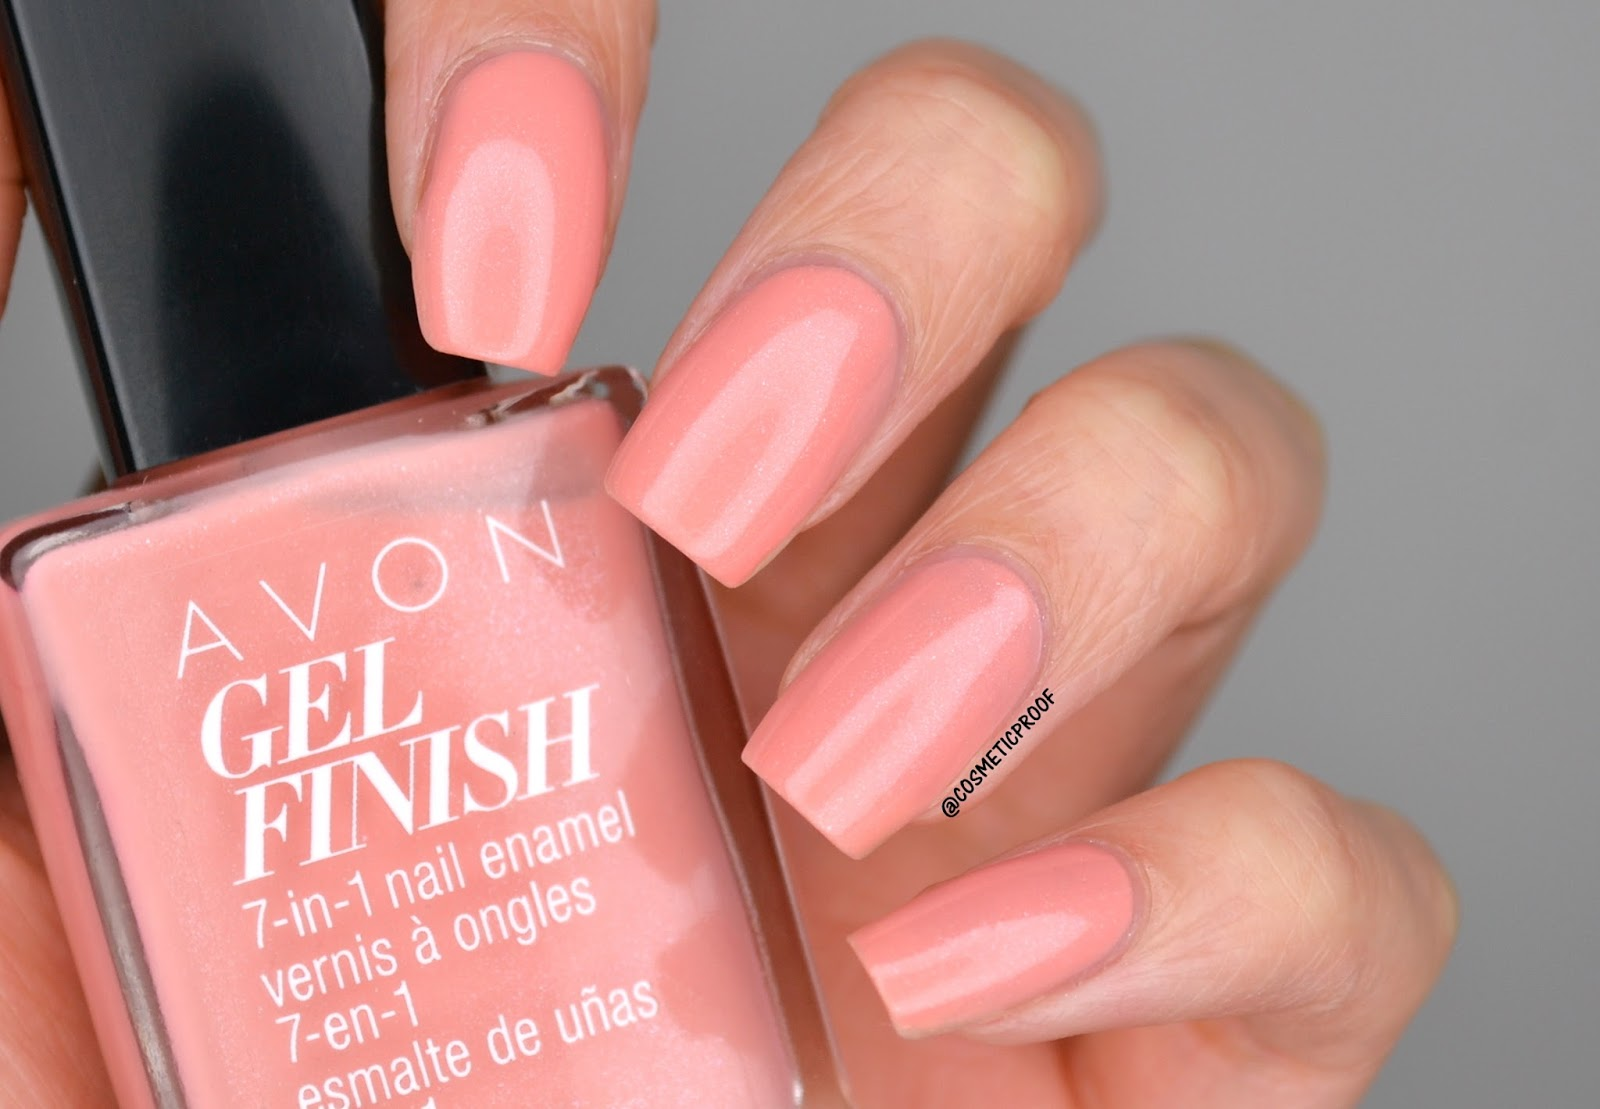 NAILS | Avon Gel Finish 7 in 1 Nail Enamel in Dazzle Pink | Cosmetic ...